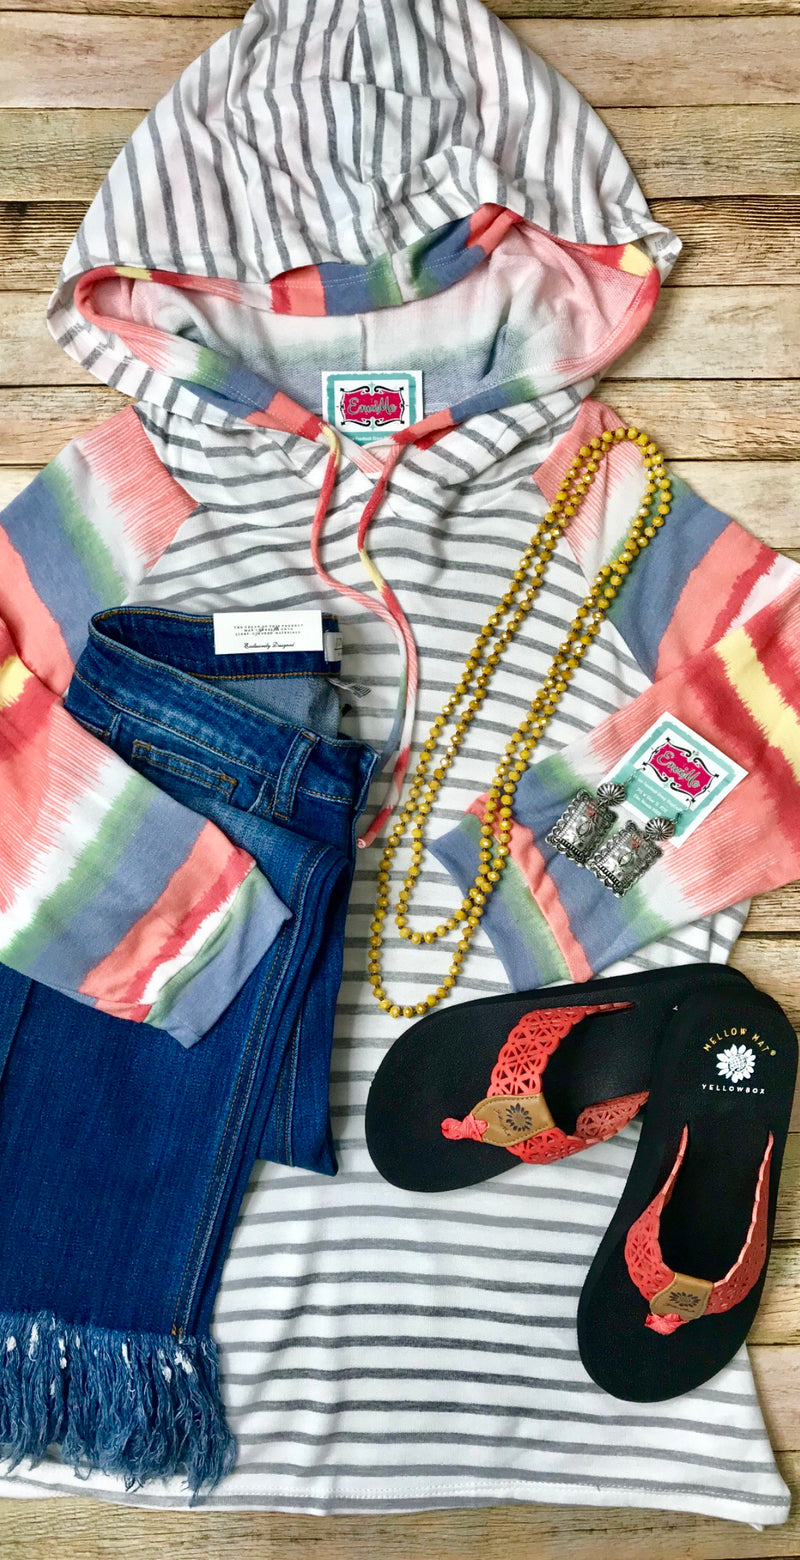 The Sarasota Striped Serape Top